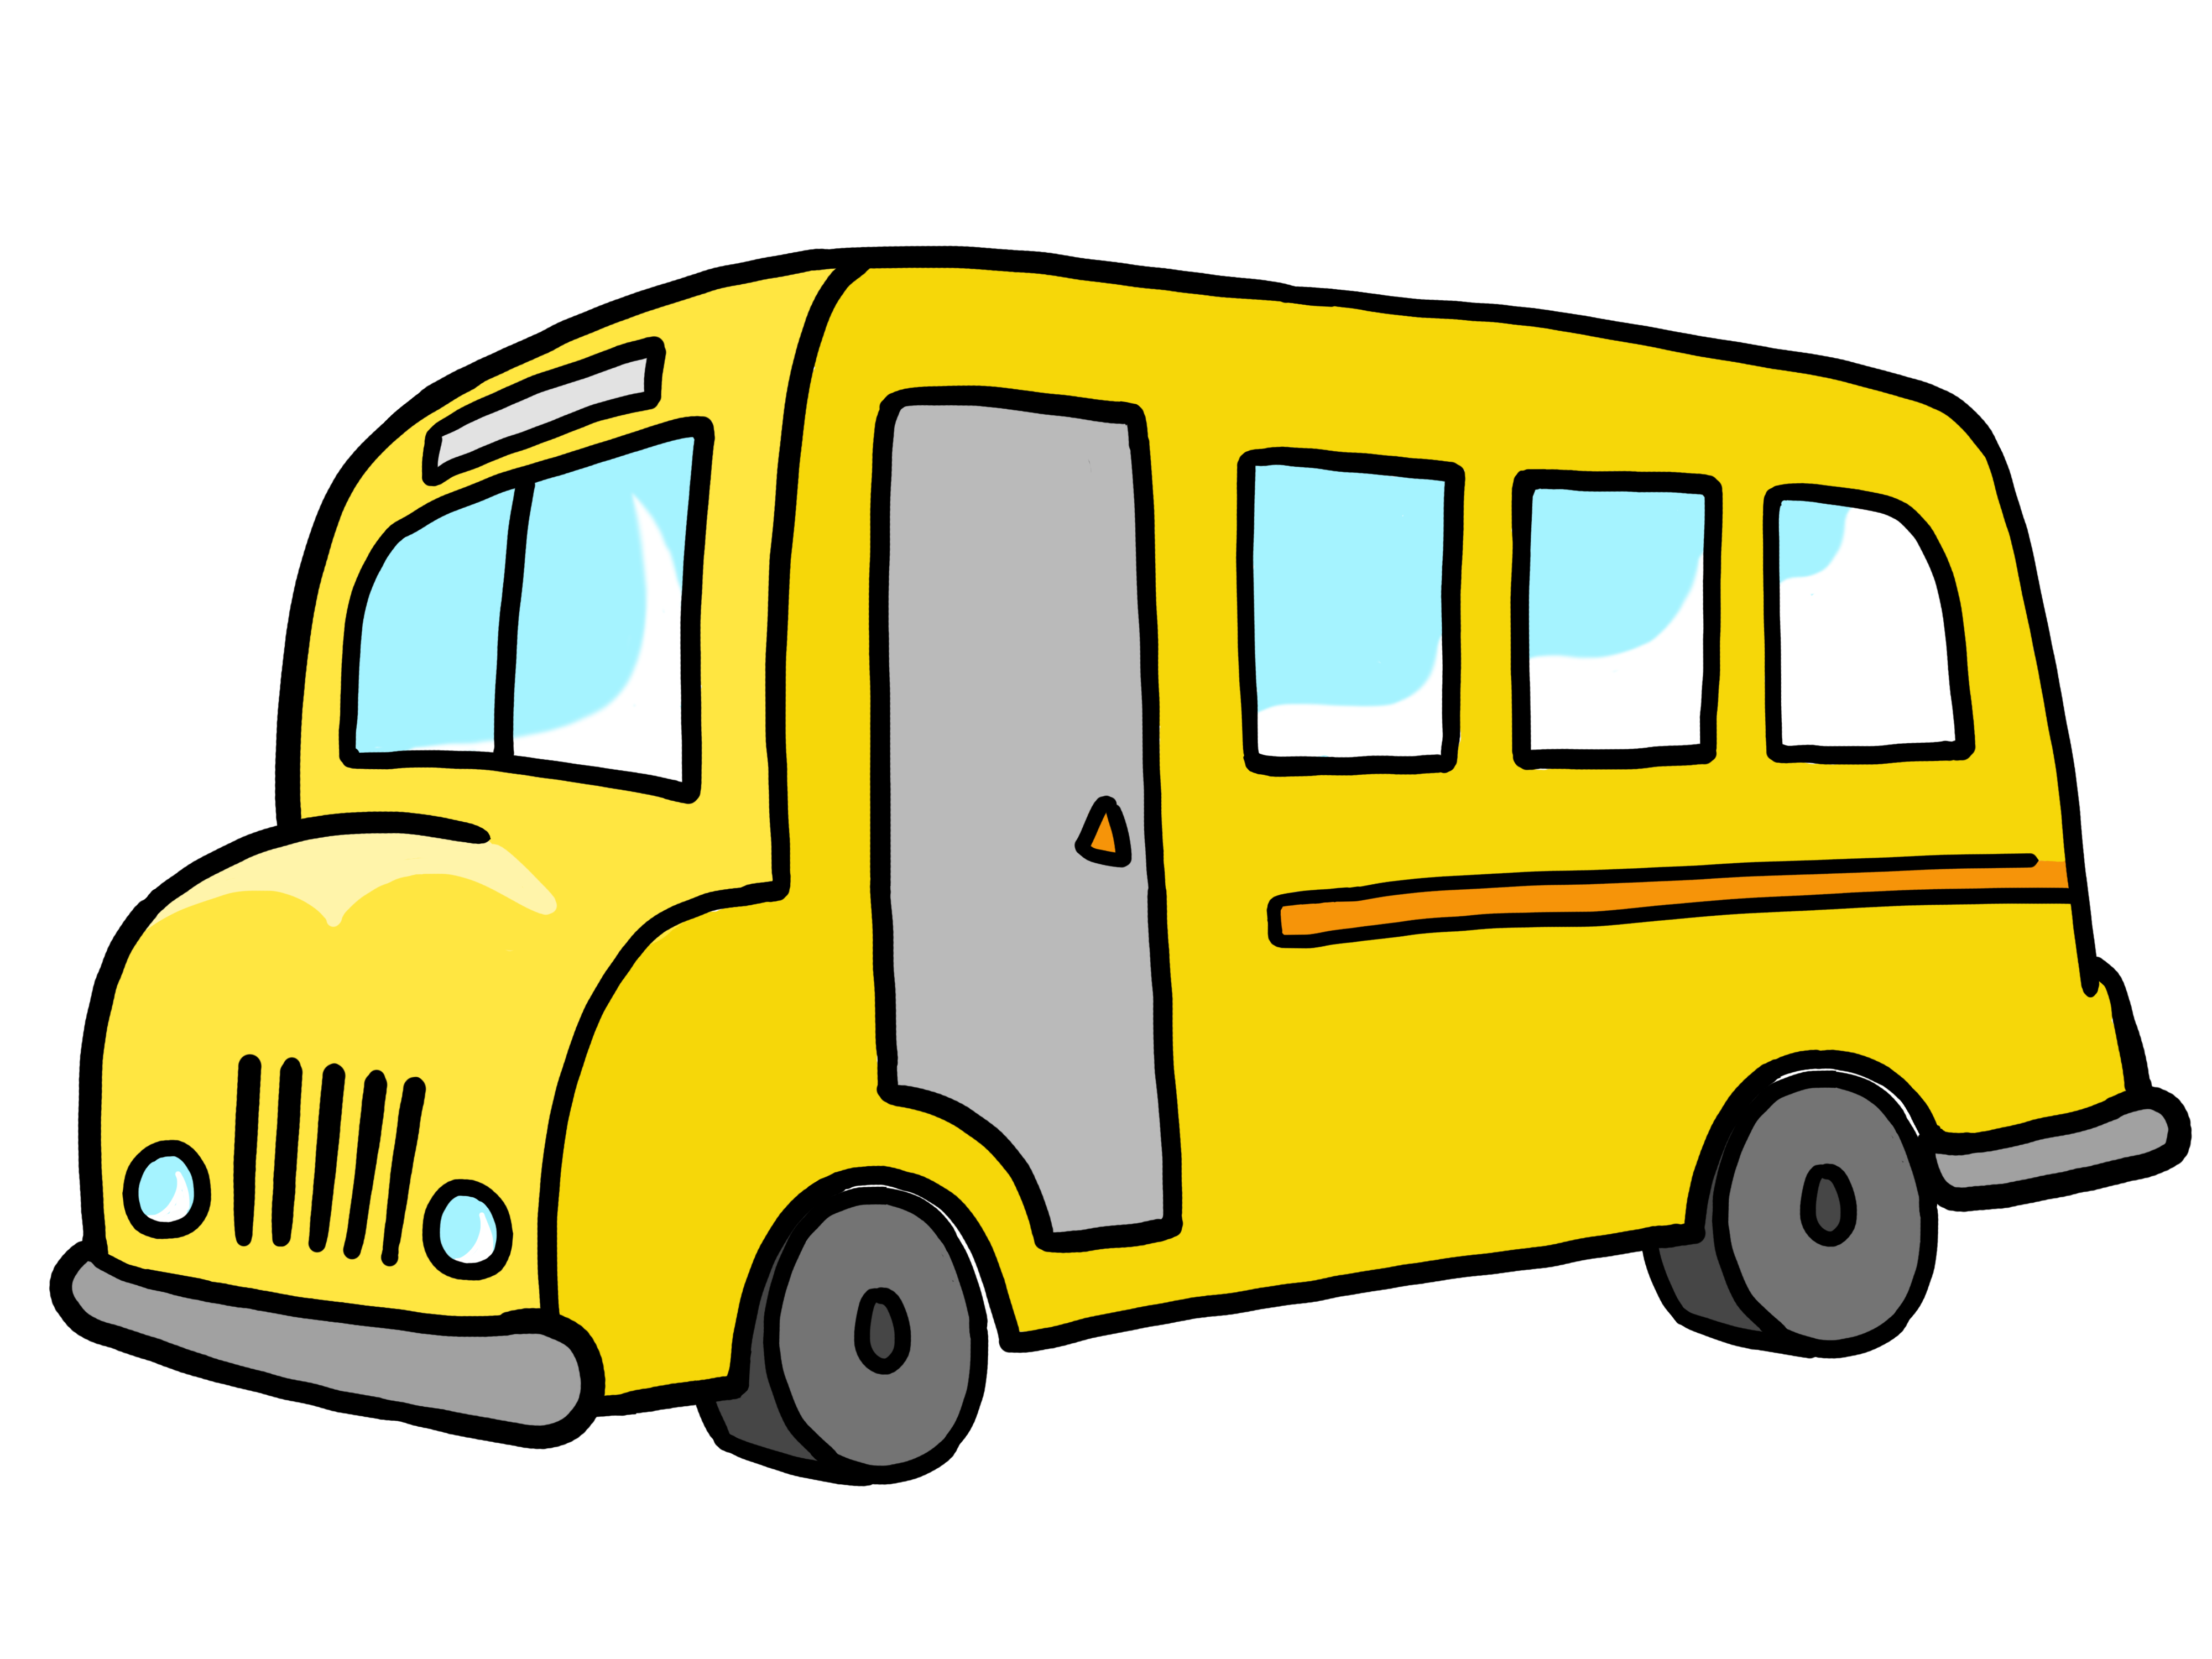 free clipart images transportation - photo #20